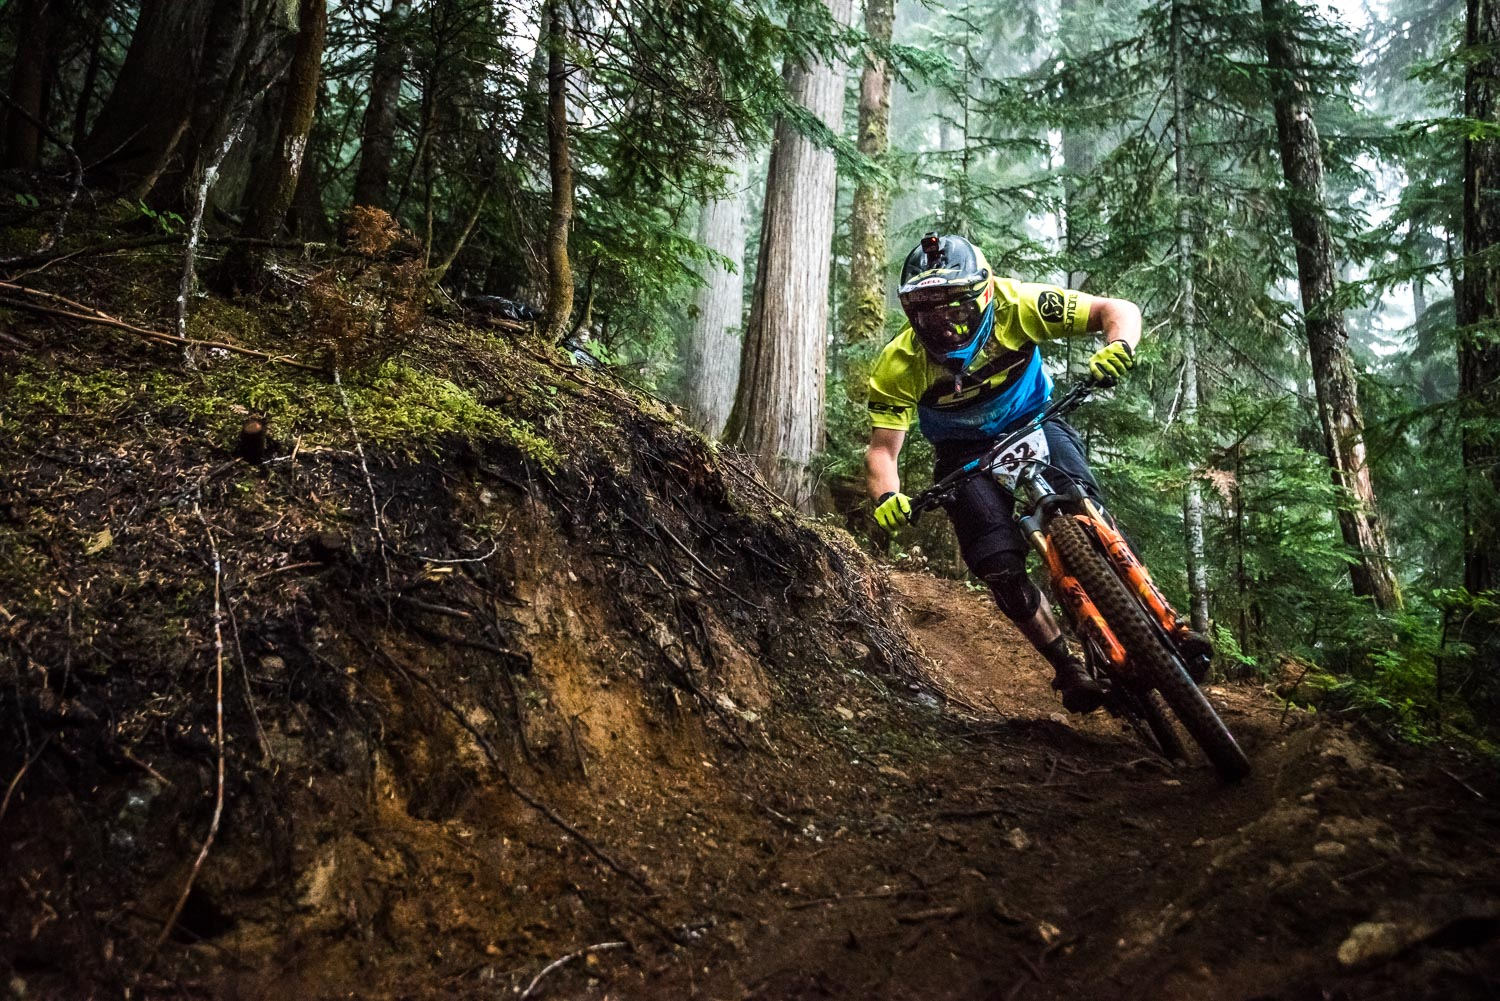 Wyn looking dialled in the loam.